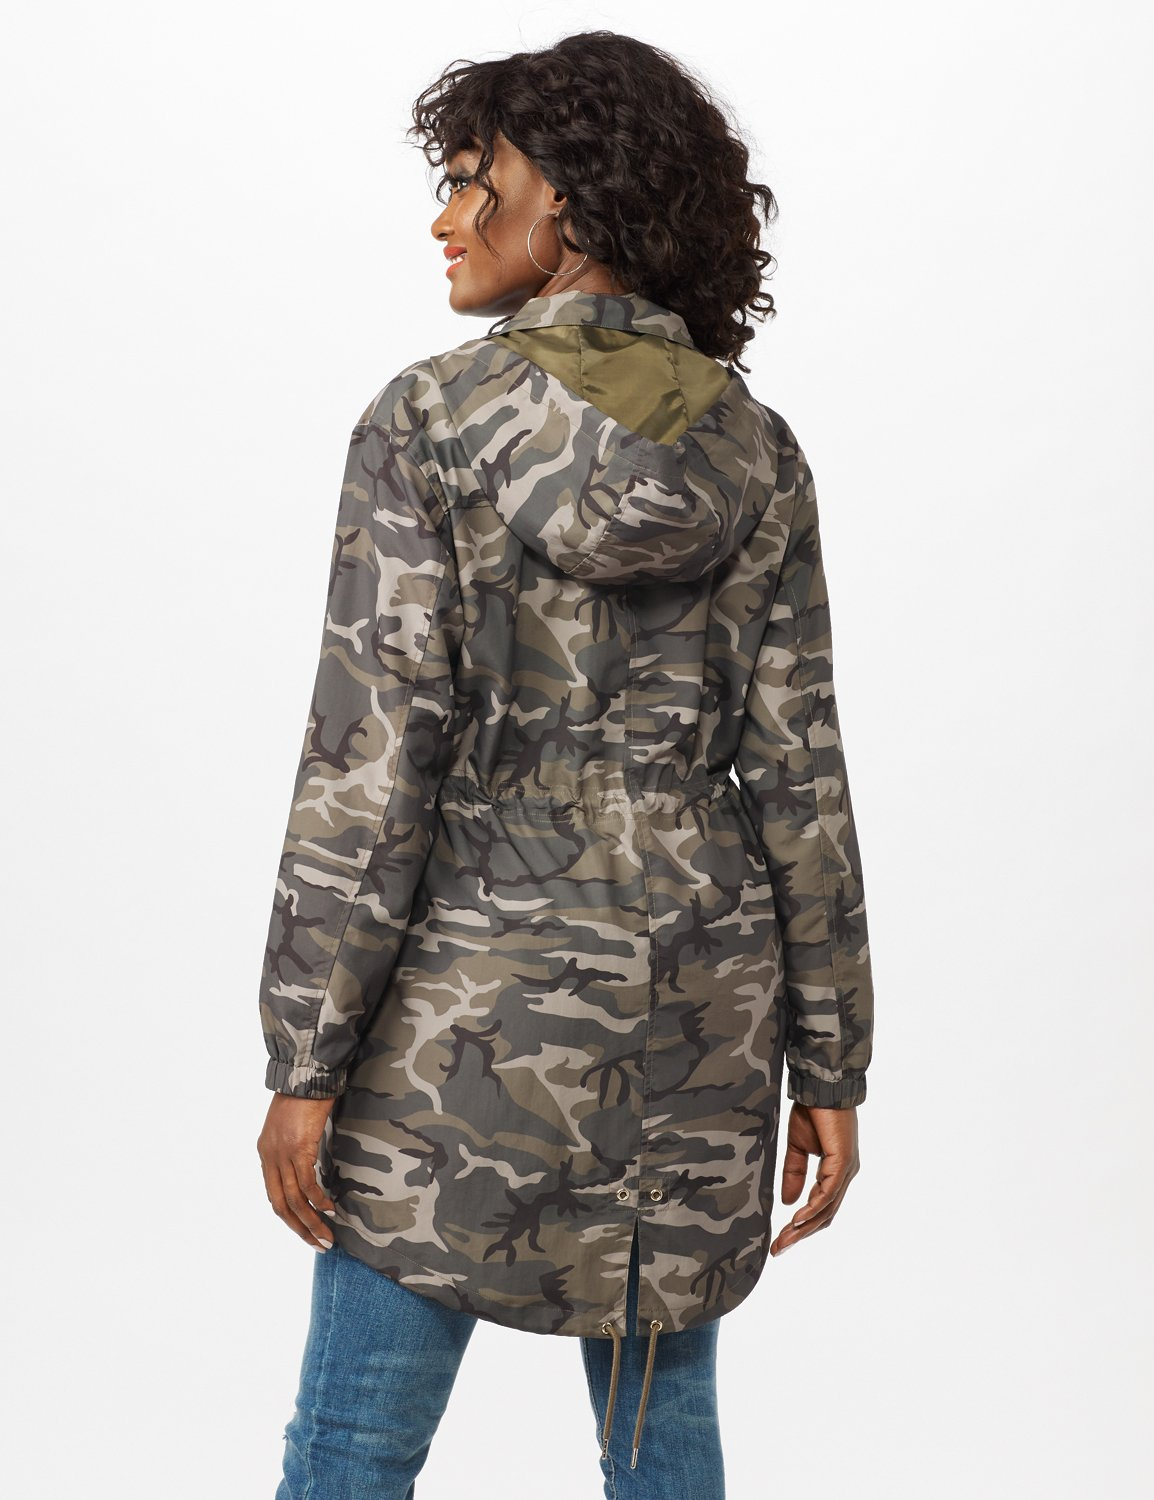 Dry Nylon Camo Zip Front Hooded Utility Jacket with Draw Cord -Olive - Back